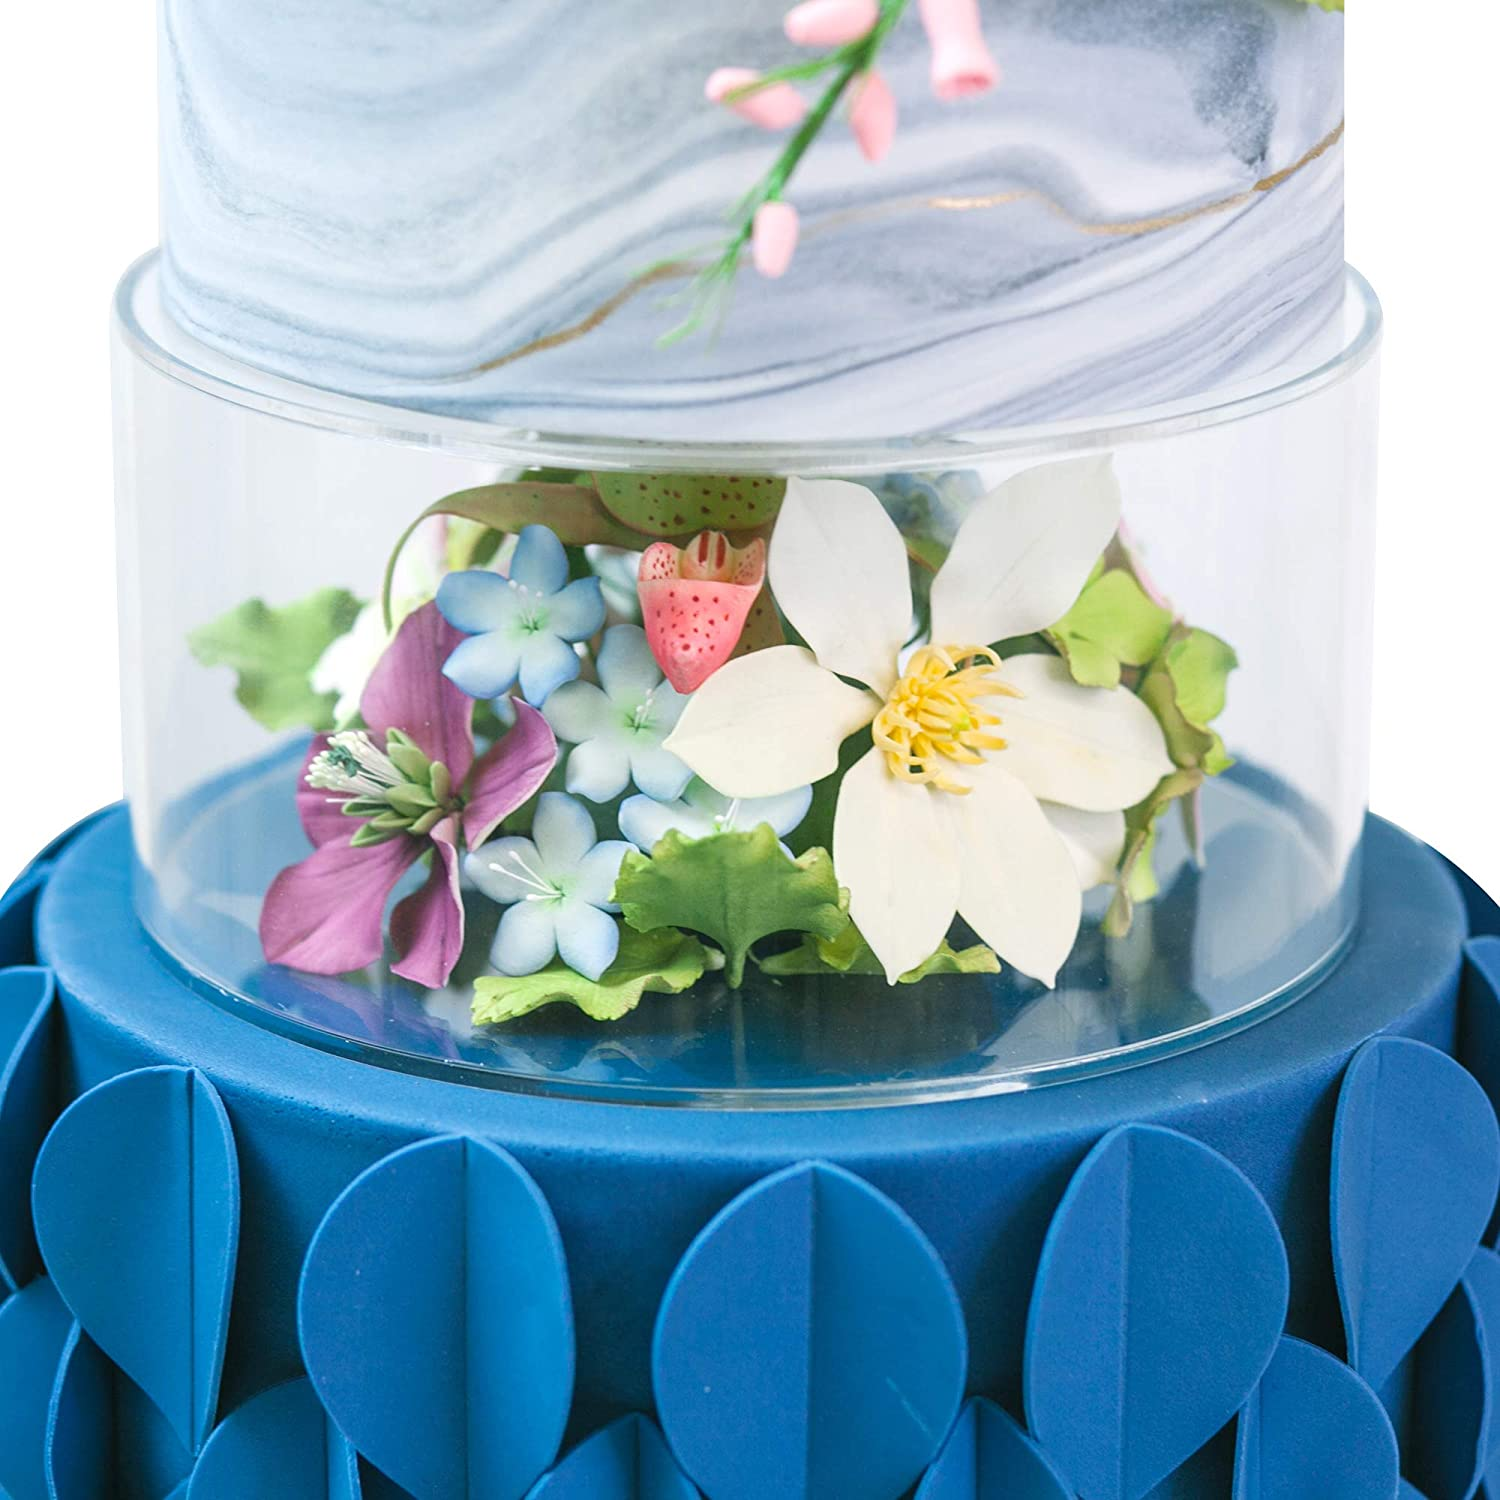 Lacupella Acrylic gift Fillable Cake Pillar and Stand Raiser Sale special price Enhance